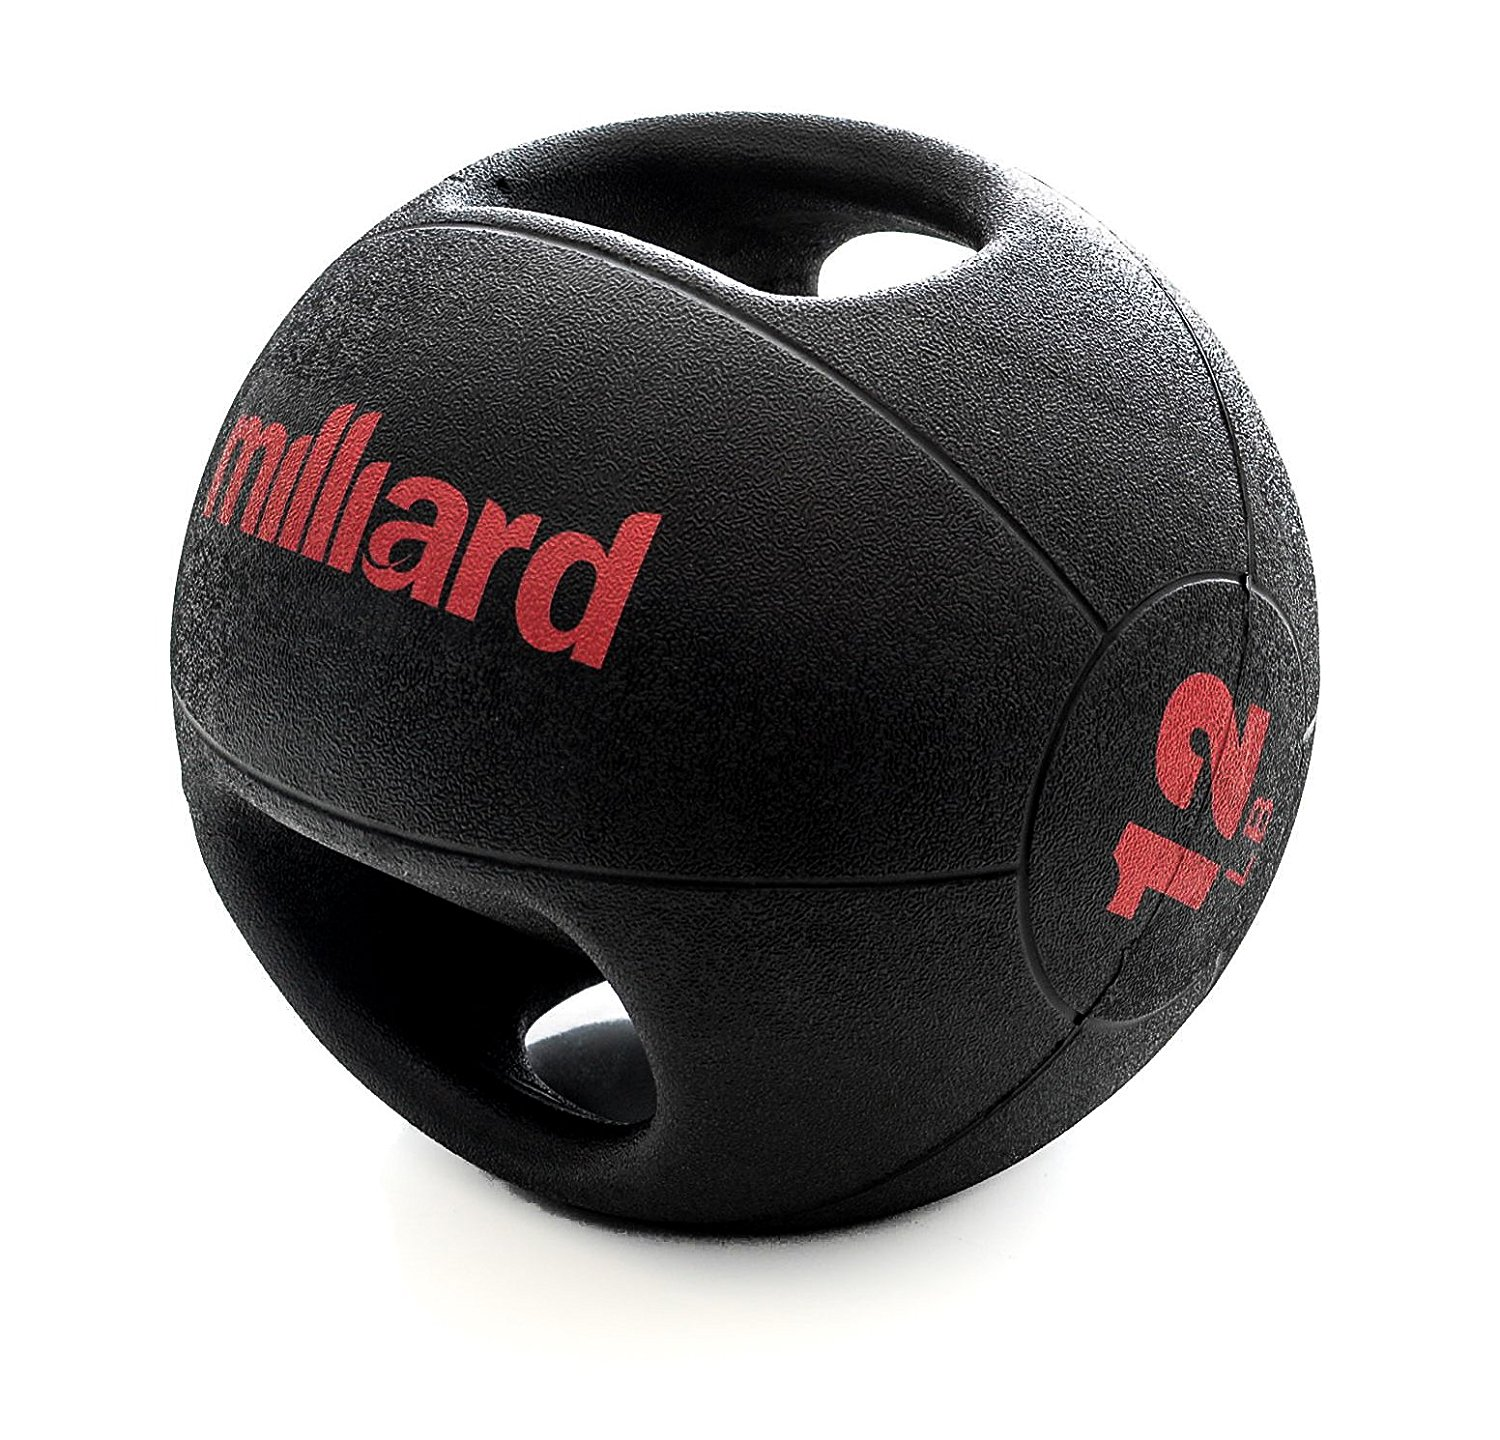 Milliard Double-Grip Medicine Ball - 10lb.